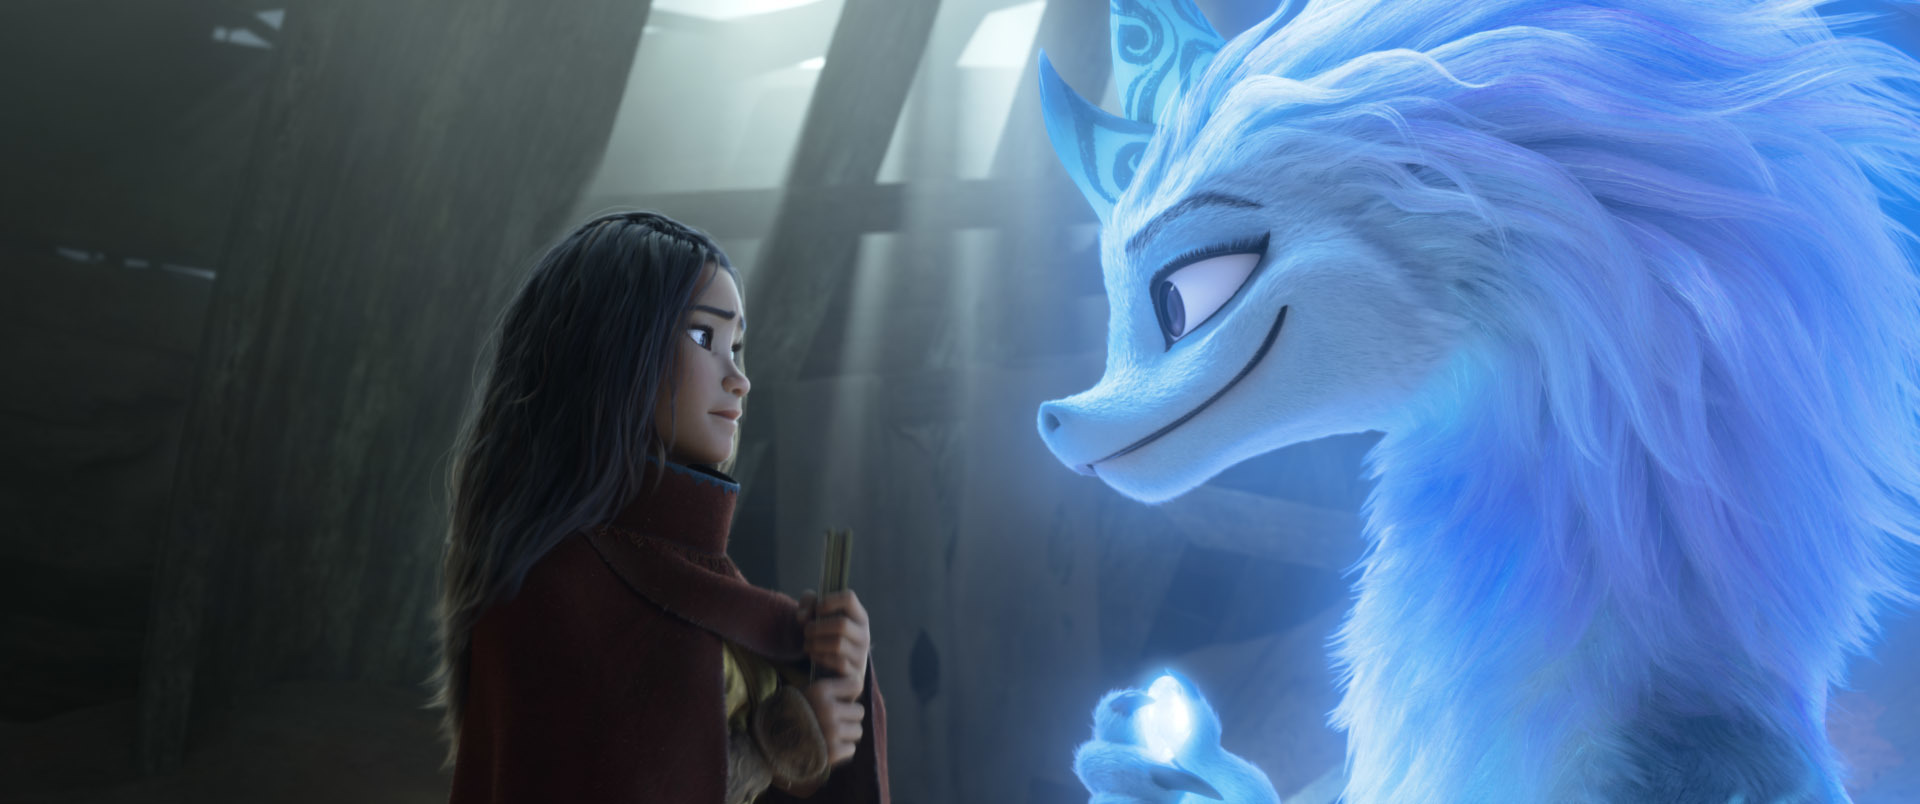 Raya, voiced by Kelly Marie Tran, seeks the help of the legendary dragon Sisu, voiced by Awkwafina.